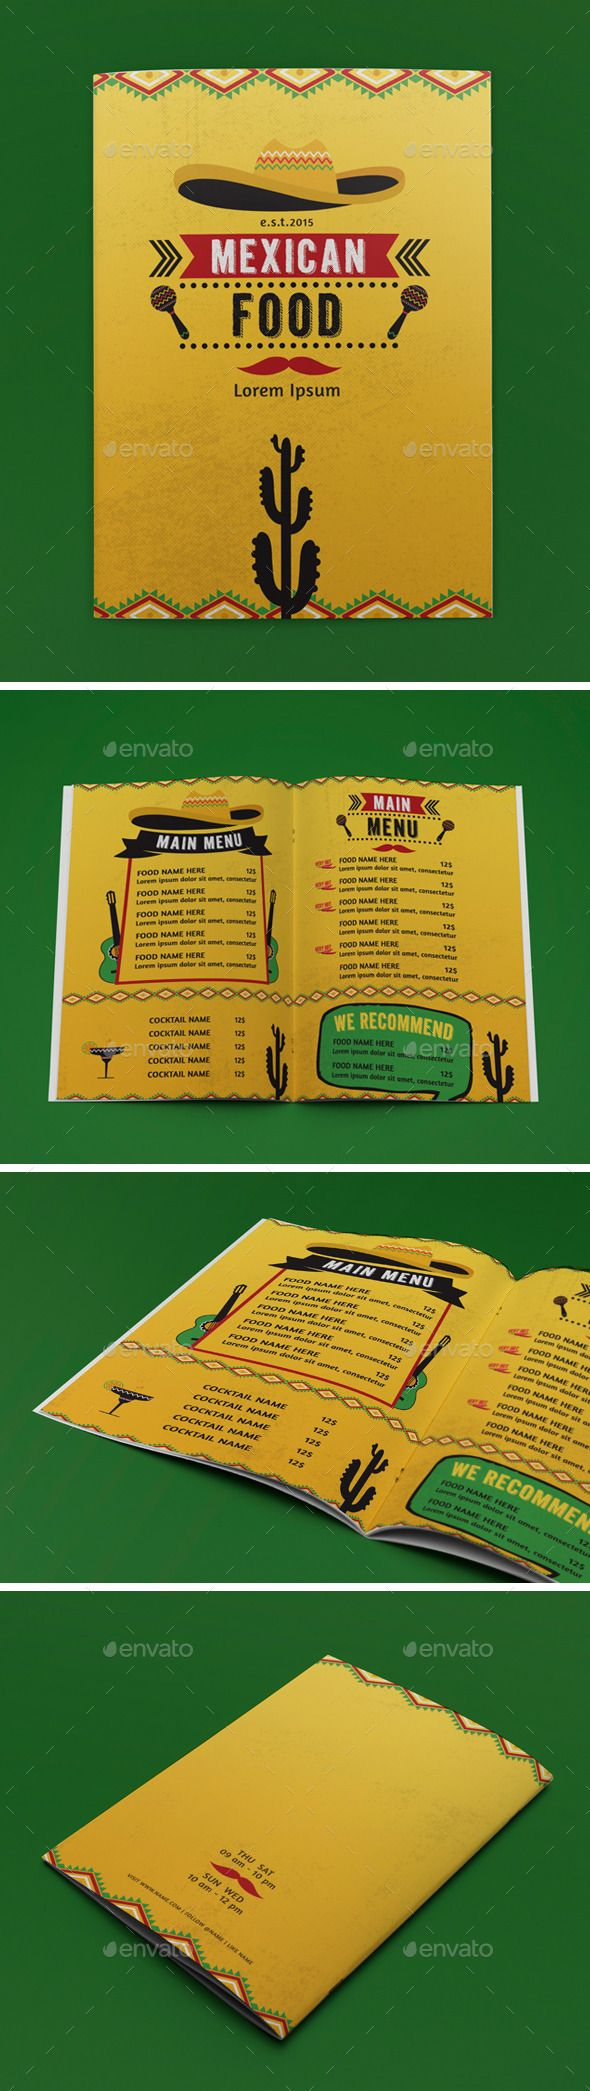 Mexican Food Menu Template #design Download: http://graphicriver.net/item/mexican-food-menu/12795149?ref=ksioks